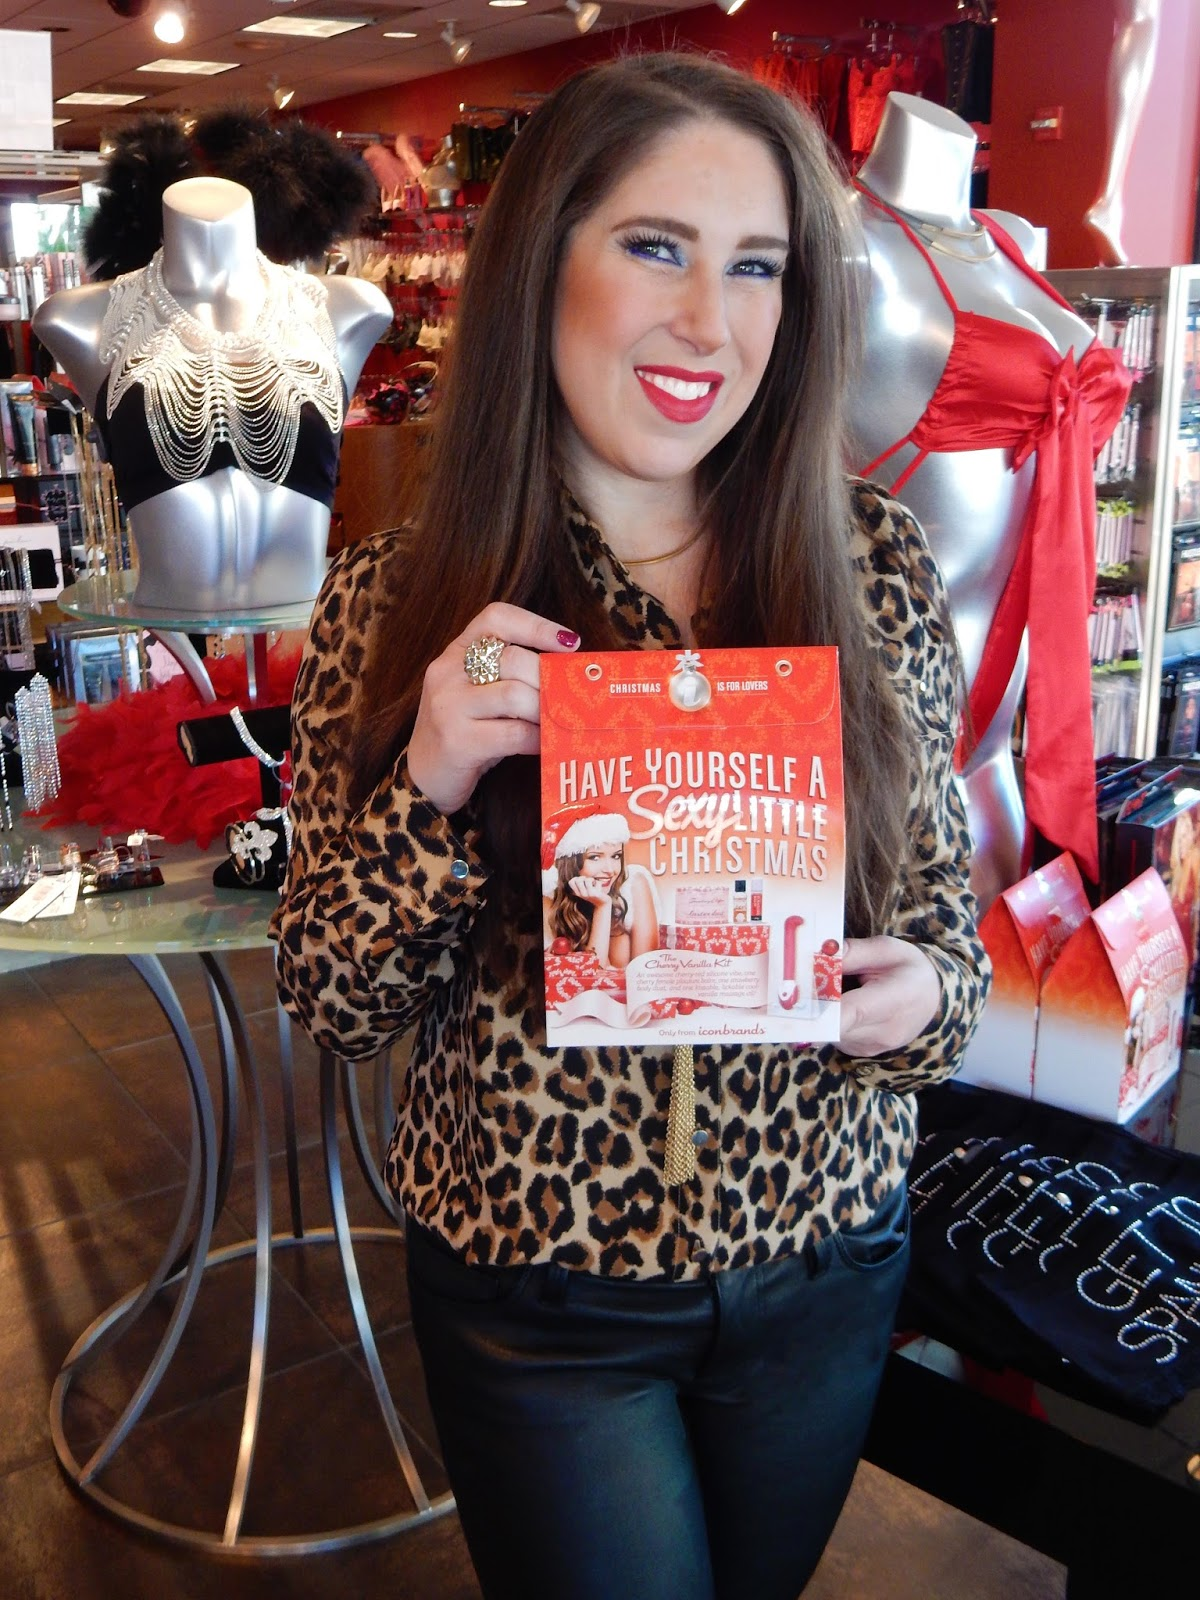 arisa The High Helled Brunette at Hustler Hollywood giving sexy christmas holiday gift ideas.